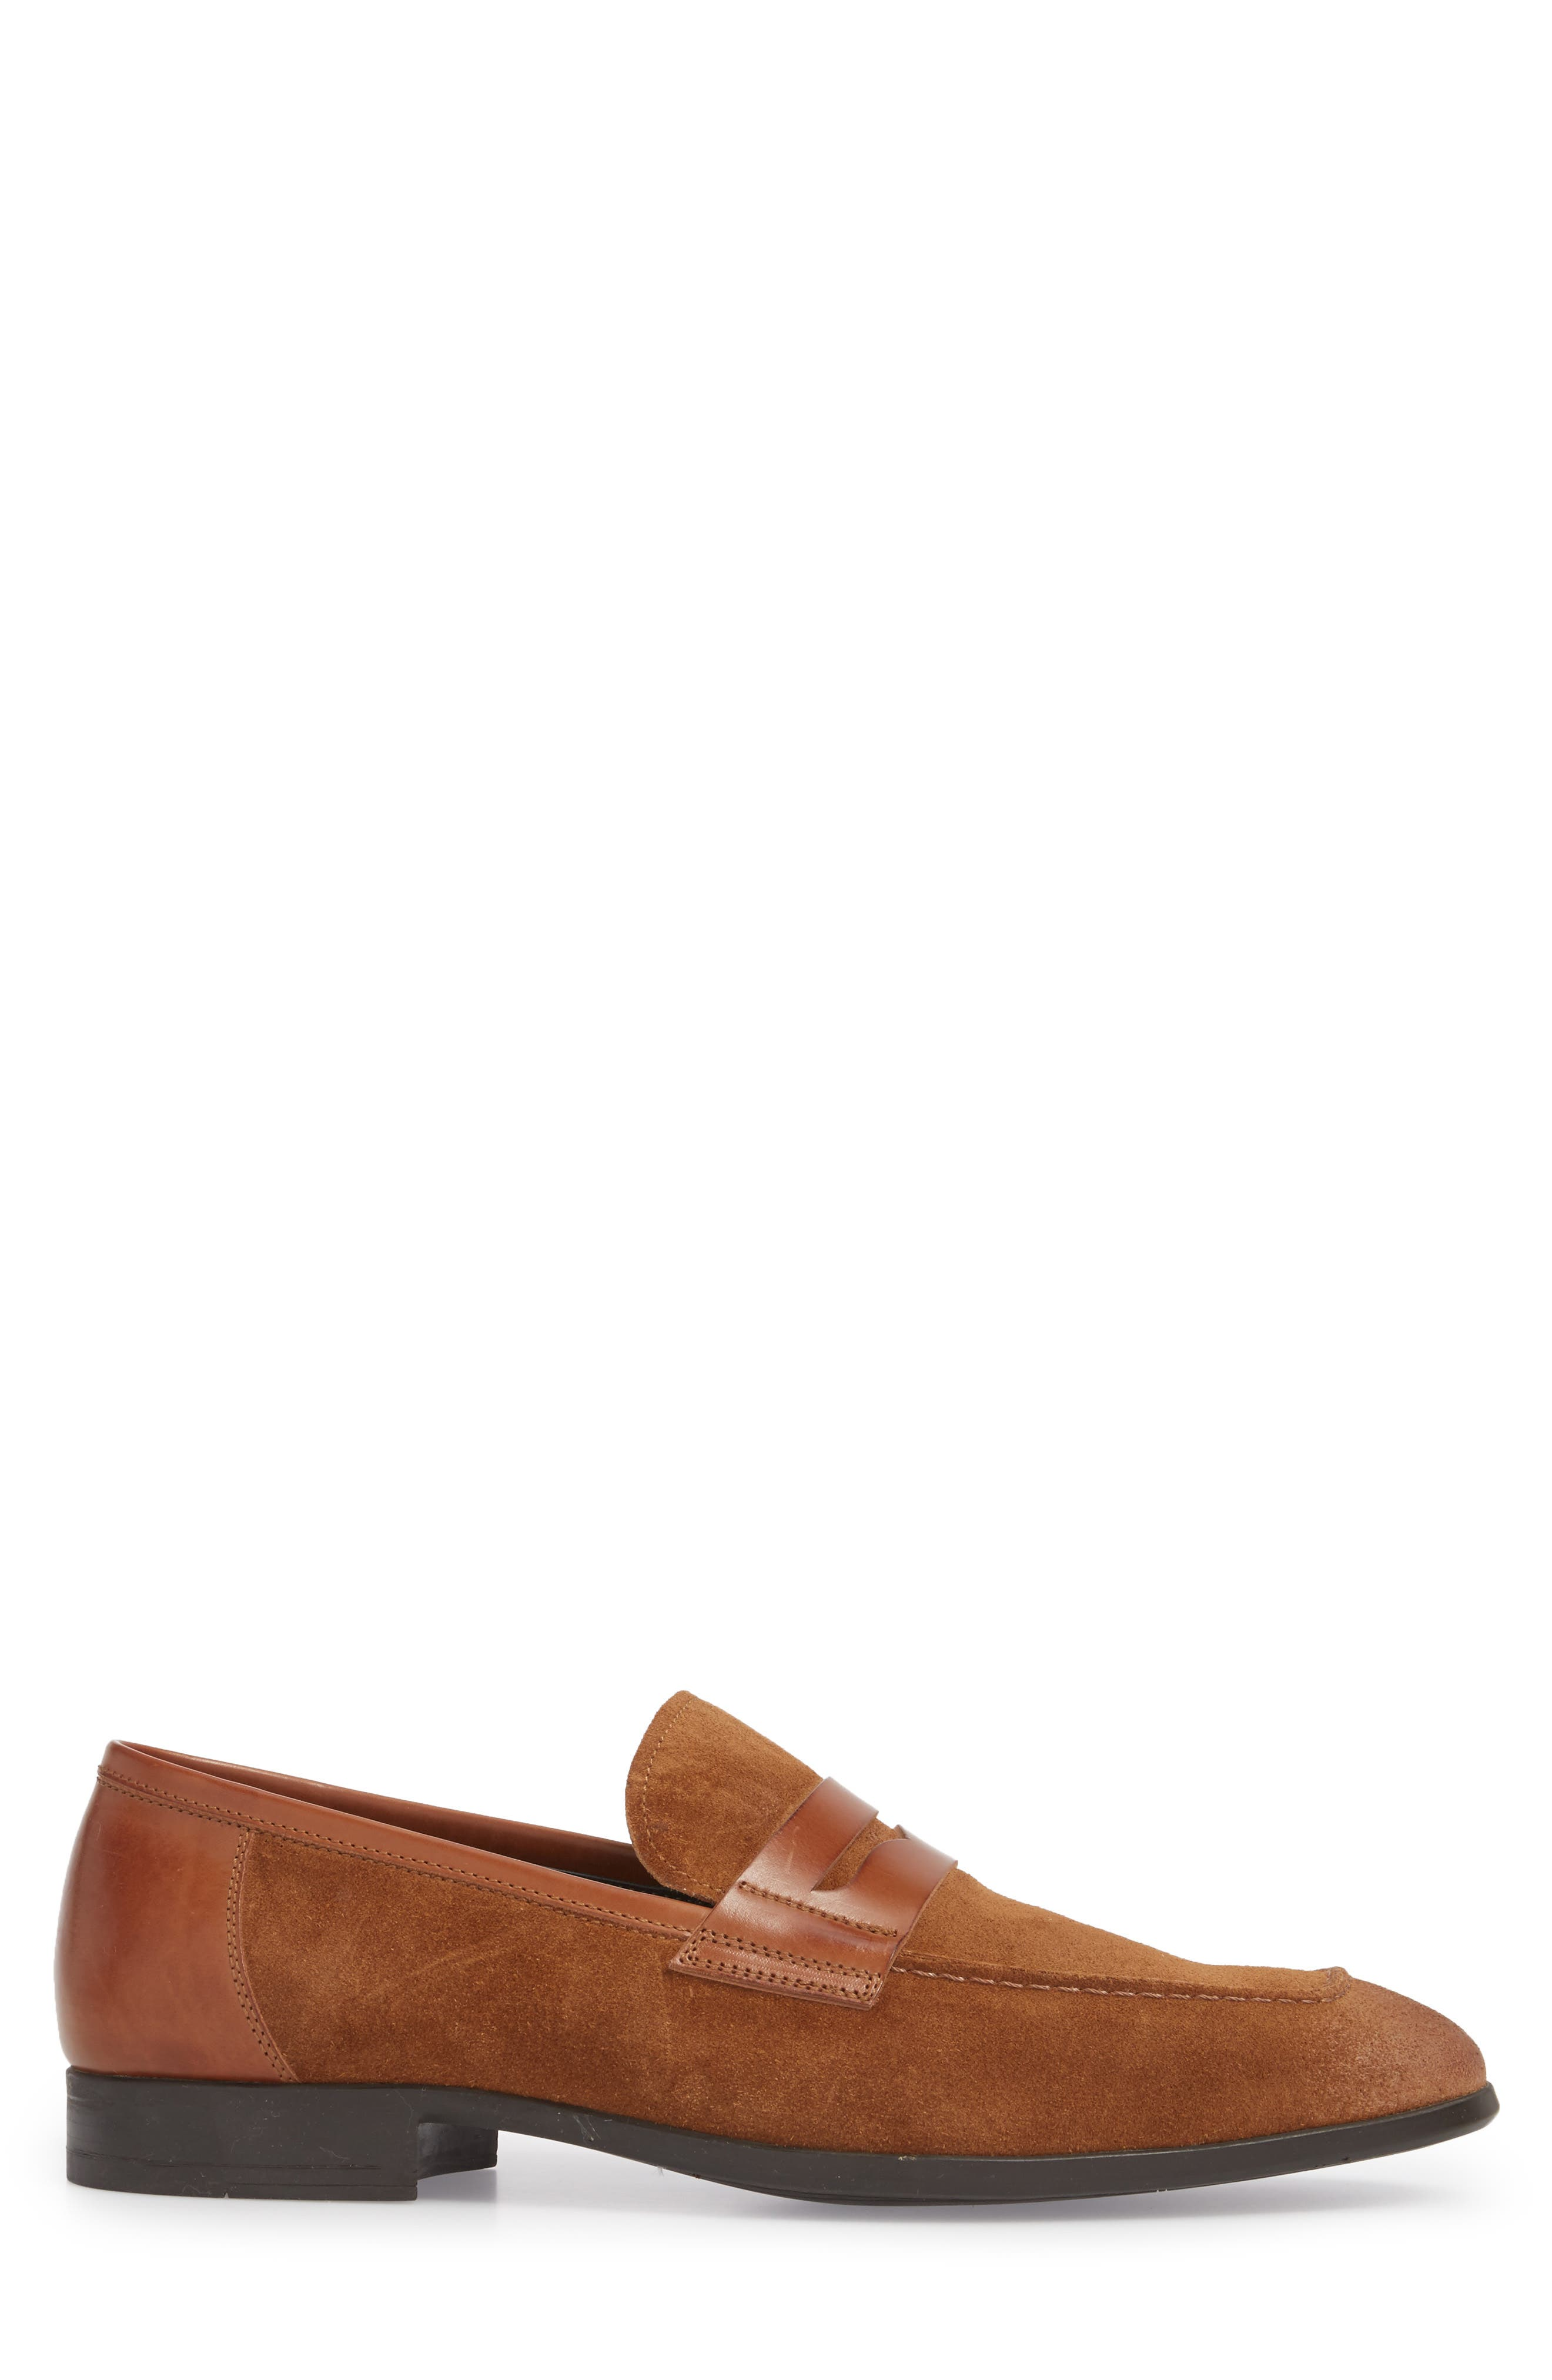 Powell Penny Loafer,                             Alternate thumbnail 3, color,                             Cognac/ Tan Suede